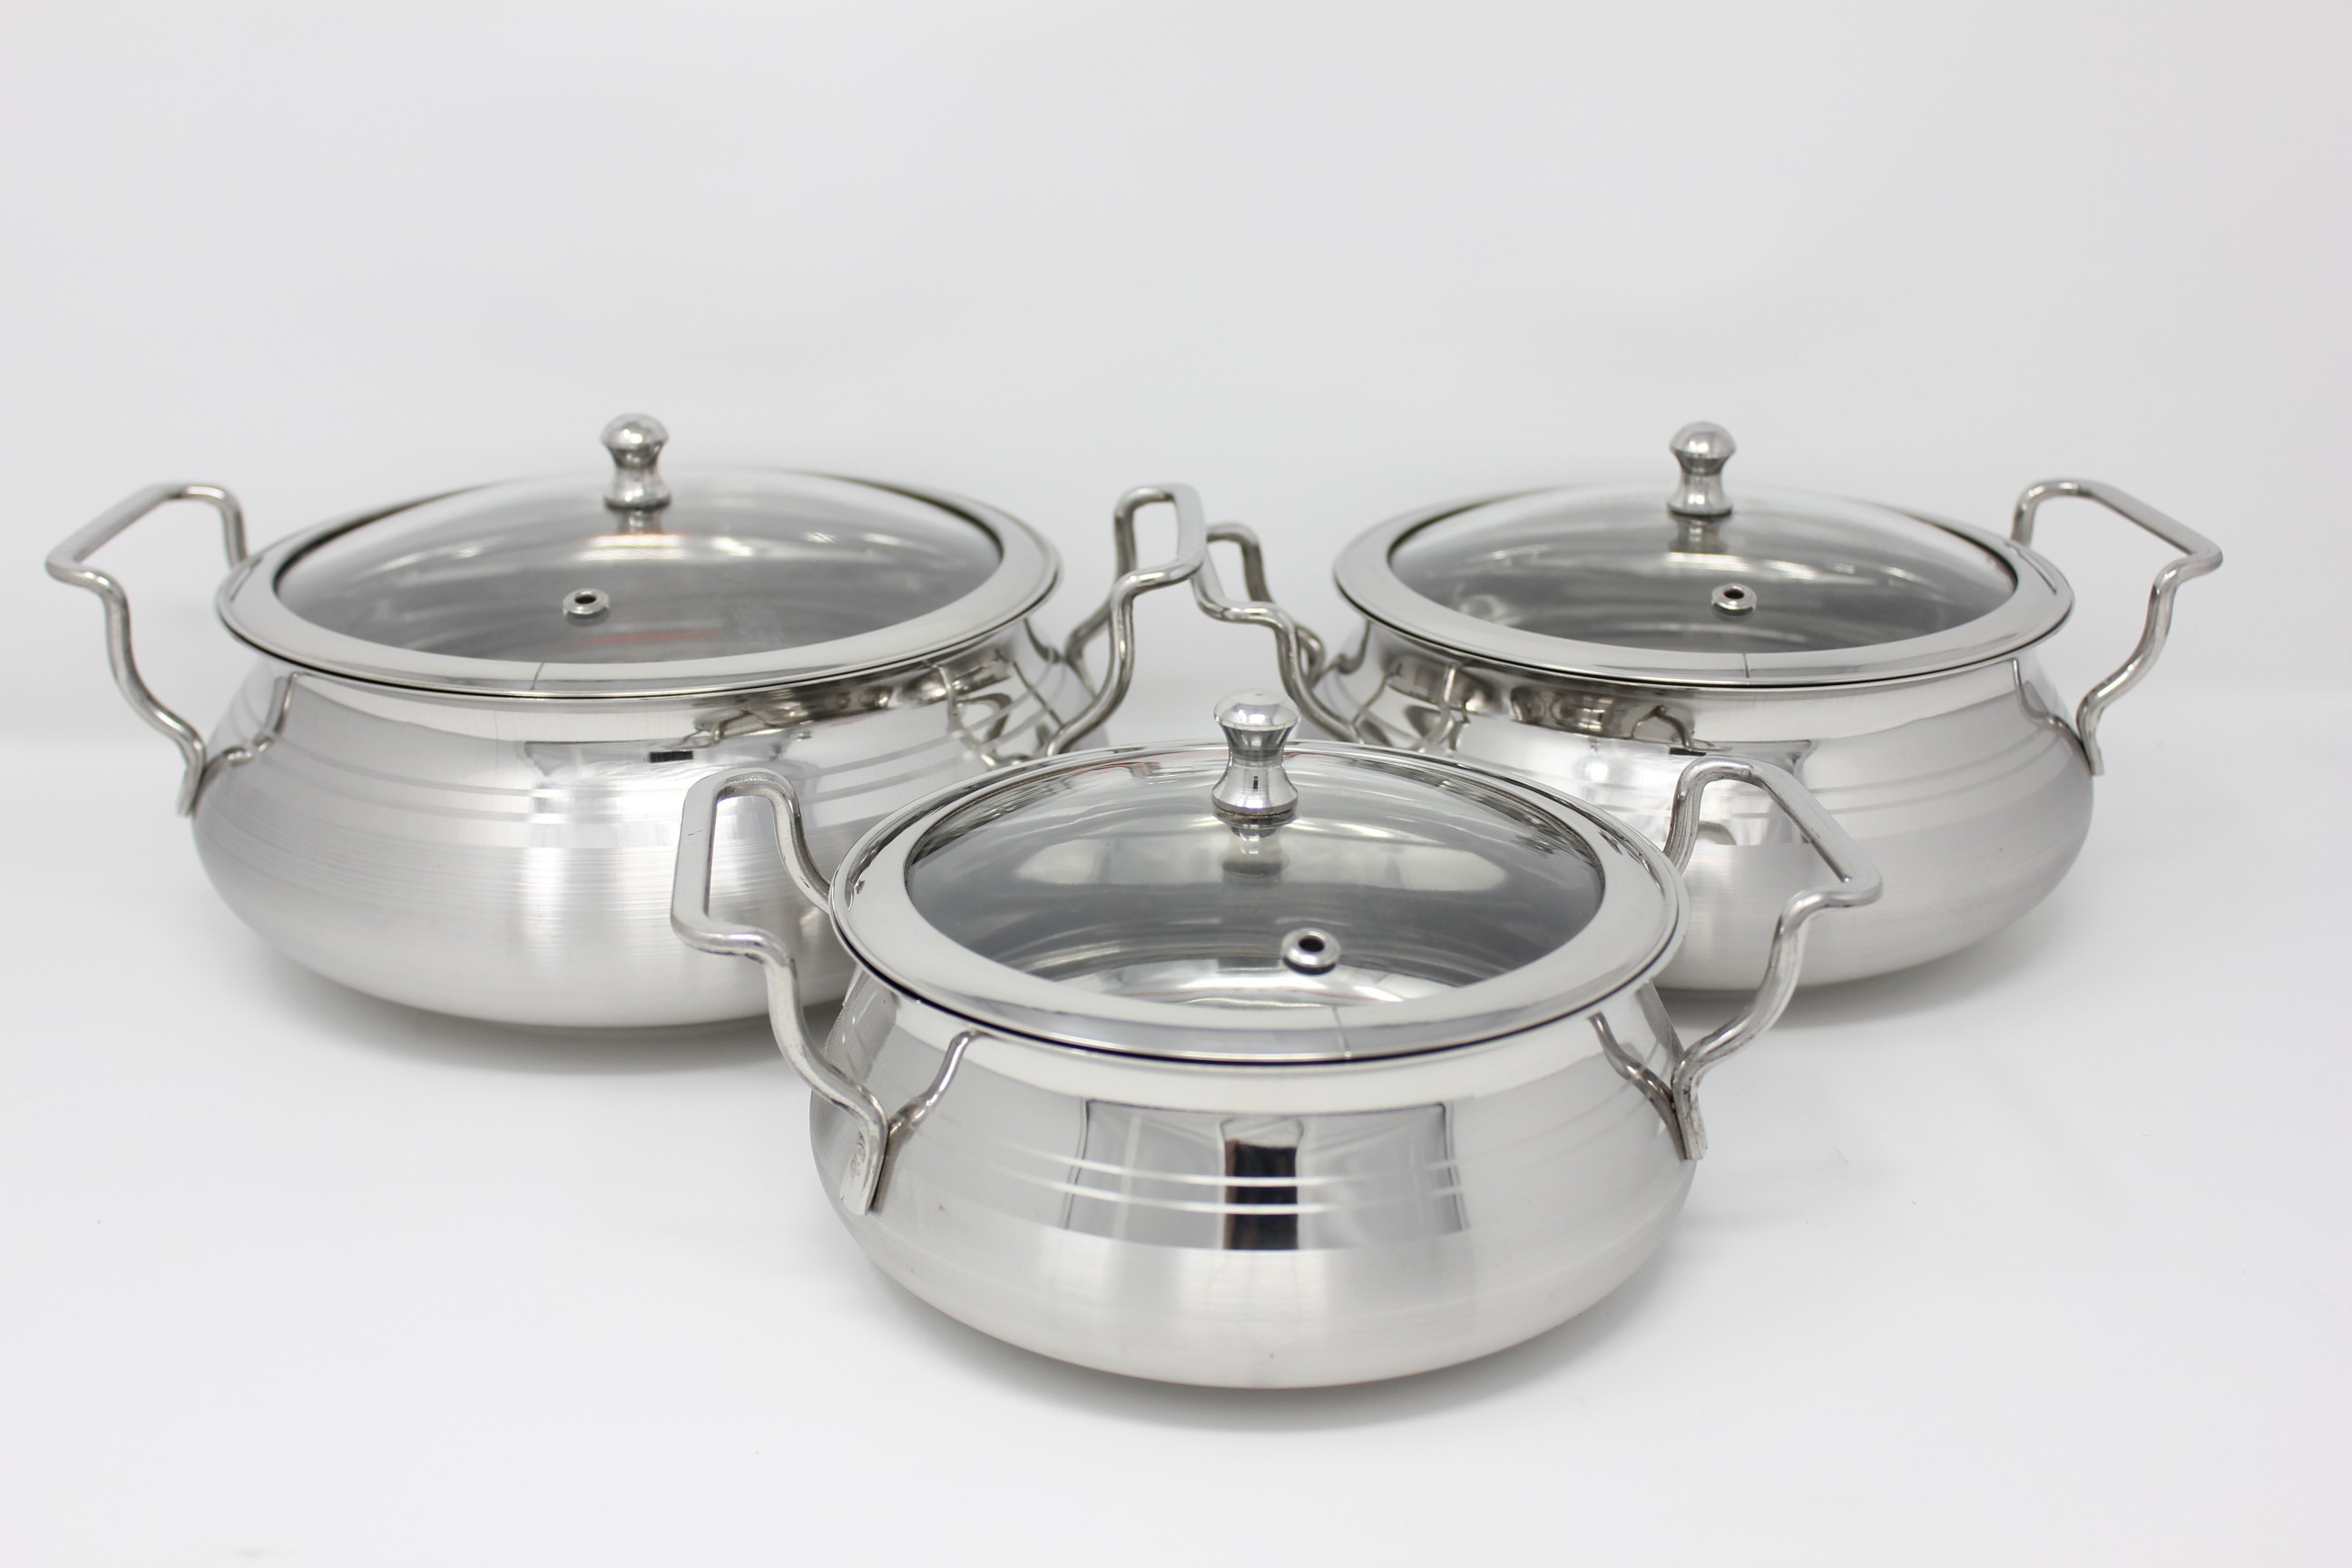 PREMIUM Stainless Steel Biryani Combo Pack (3 Pcs) with Glass Lid Cookware Set Flipkart